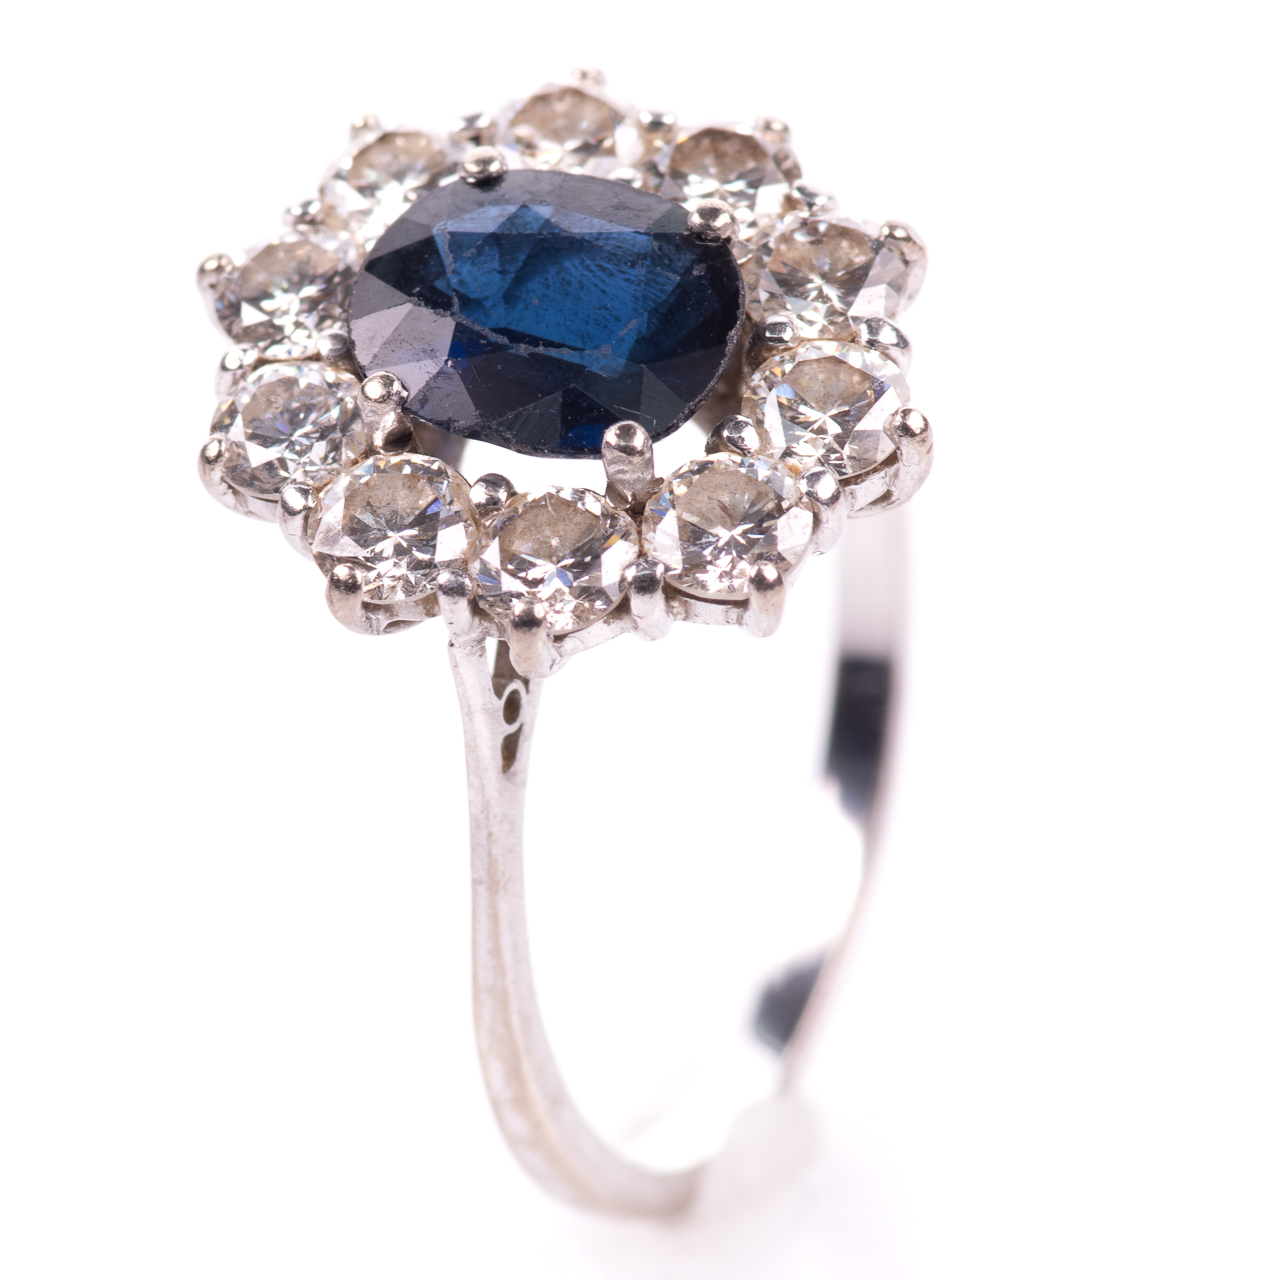 18ct White Gold 1ct Sapphire & 1ct Diamond Cluster Ring - Image 2 of 7